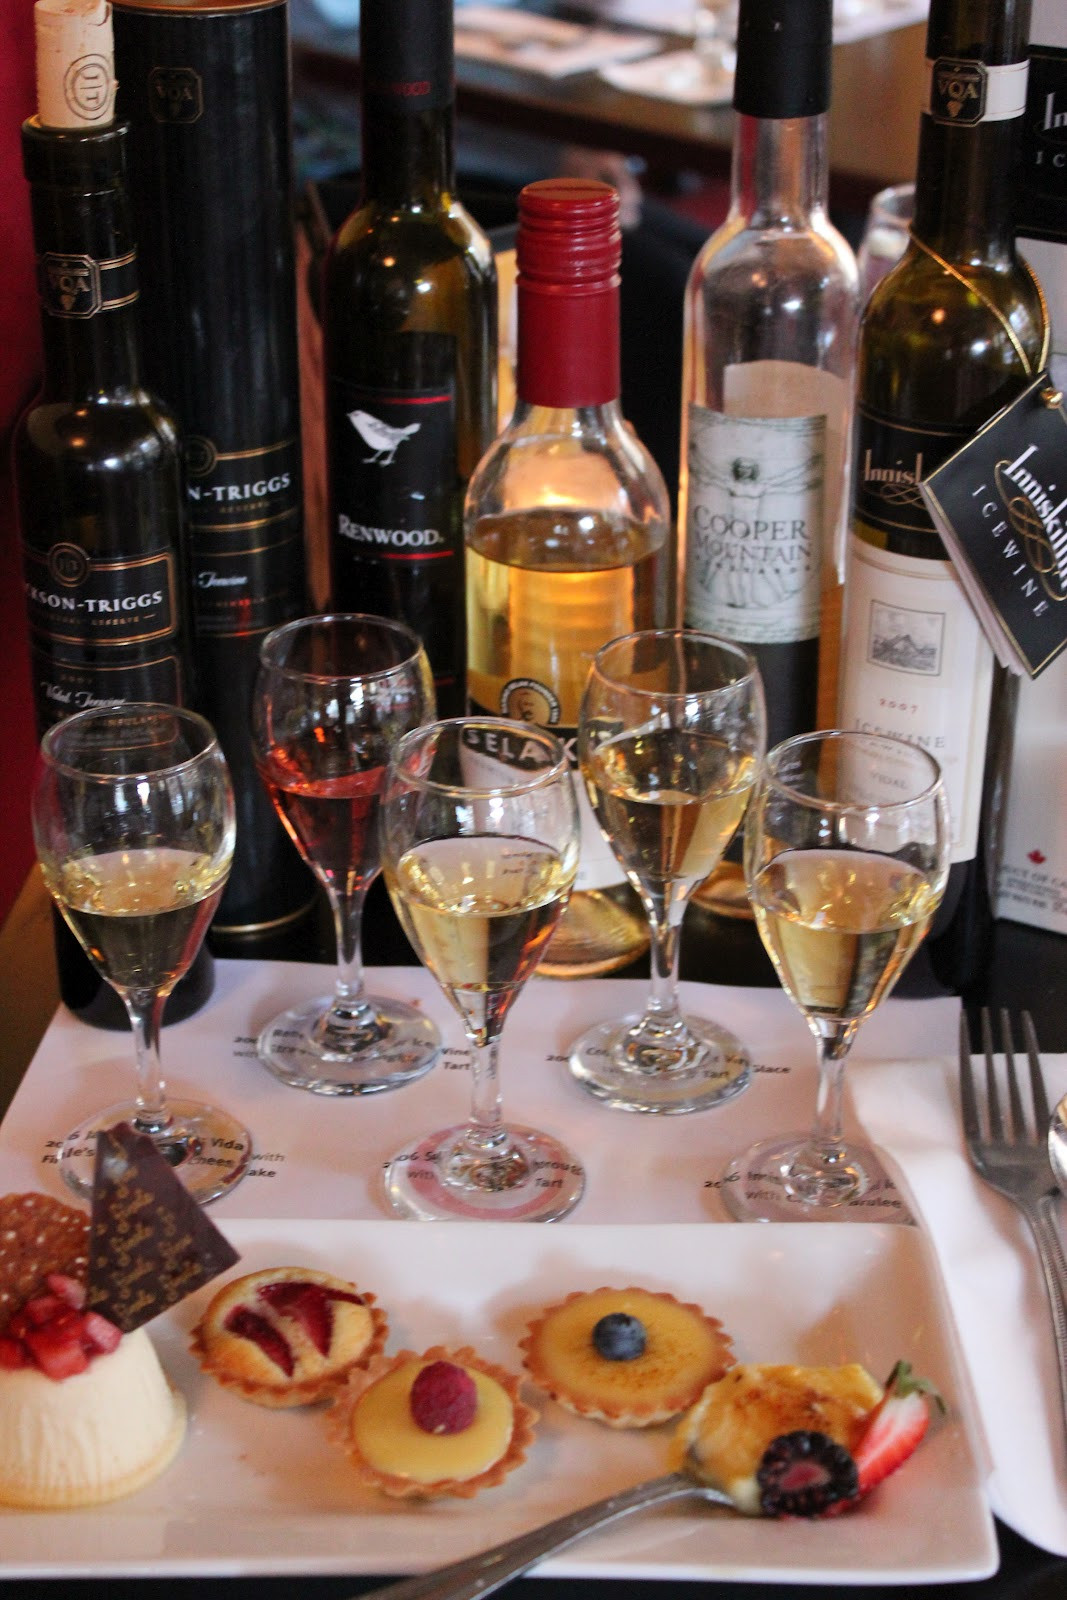 Wine And Dessert  Chelsea s Choice Ice Wines and Seasonal Desserts at Finale